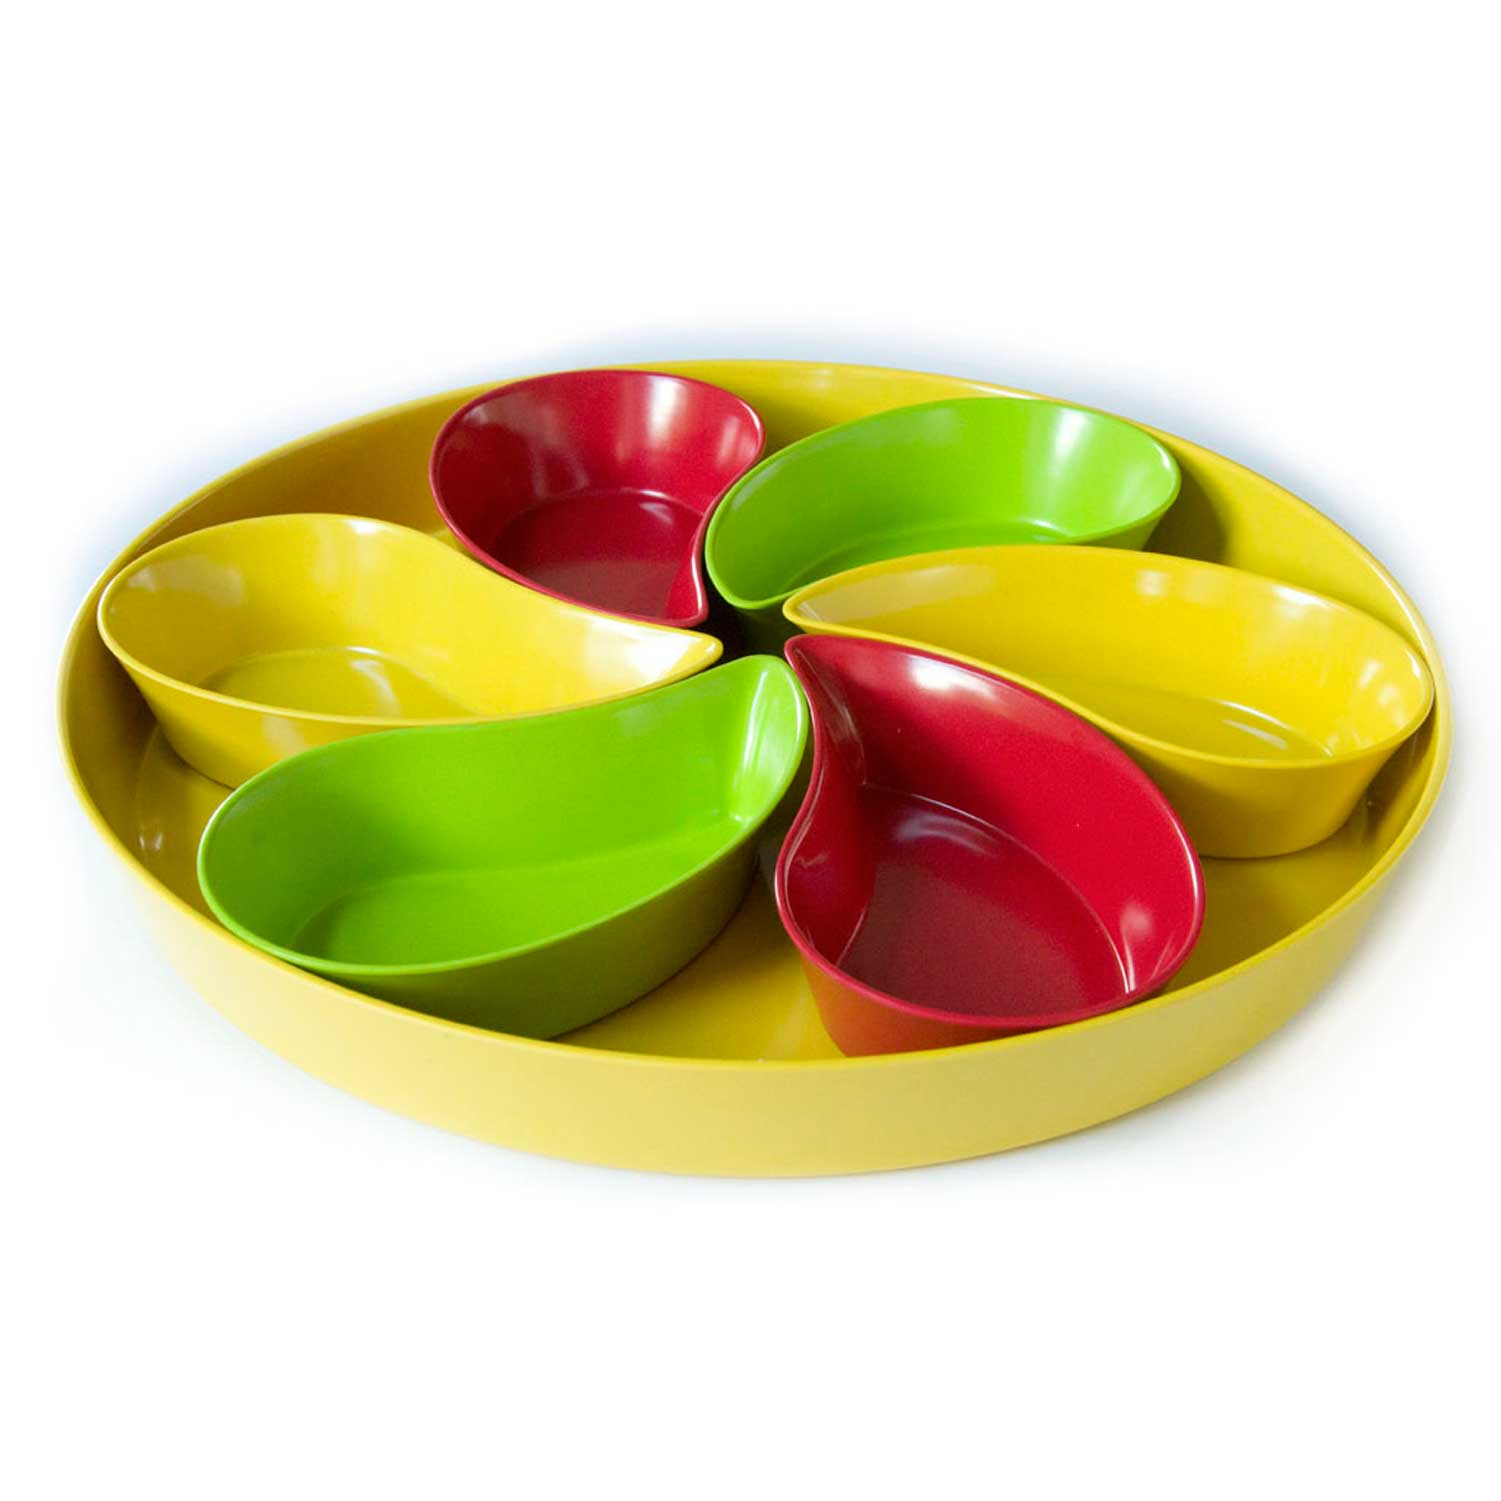 yumi-476-nature-natural-bamboo-serving-tray-with-6-teardrop-dishes.jpg